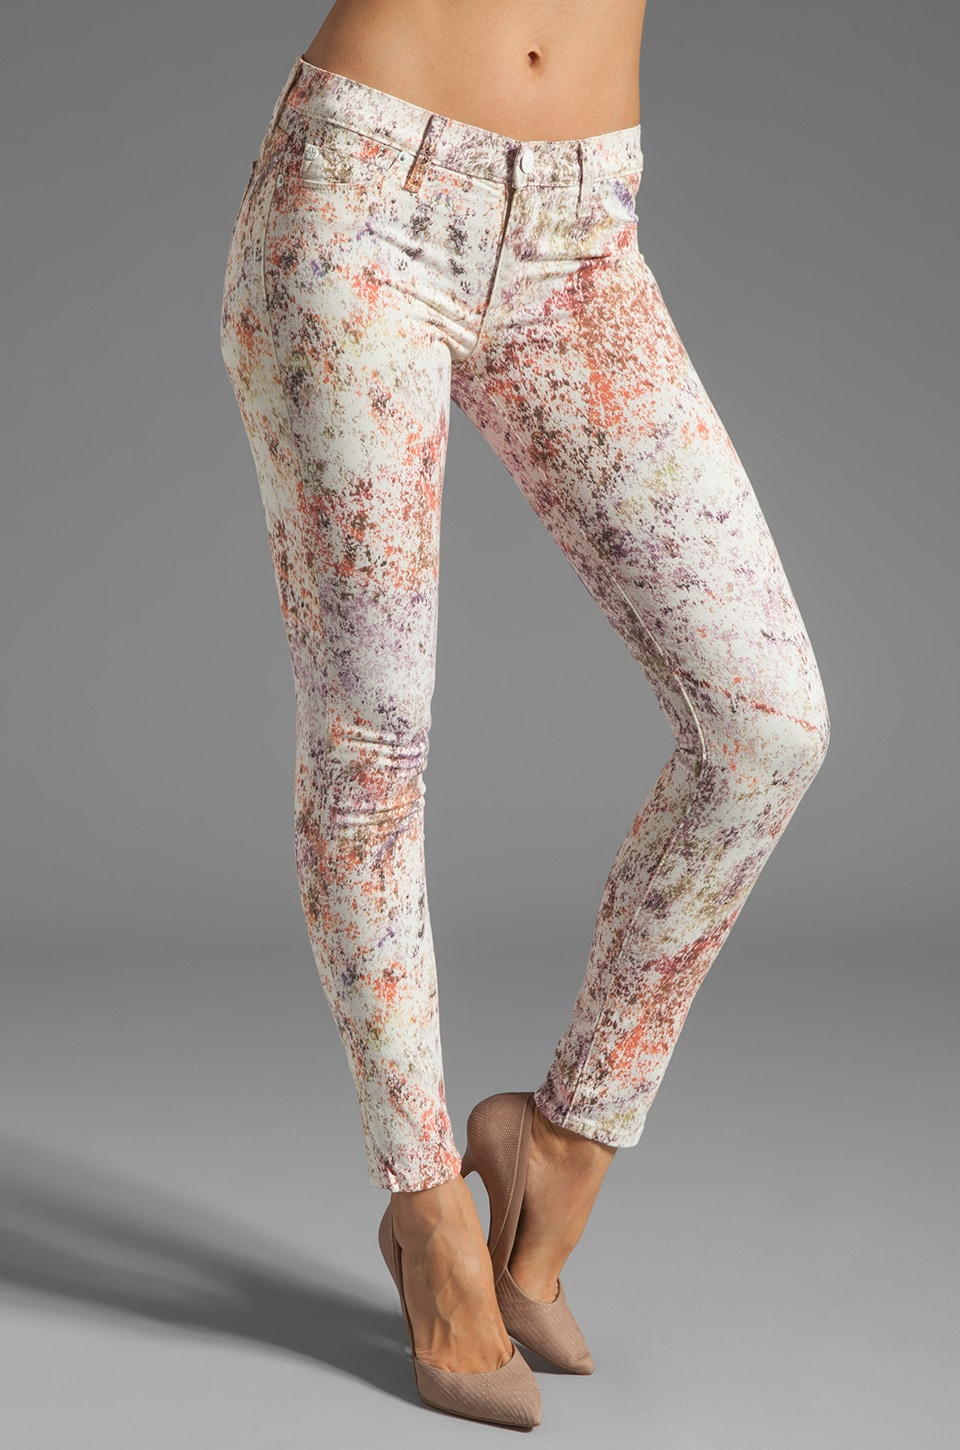 Hudson Jeans Krista Super Skinny in Invasion